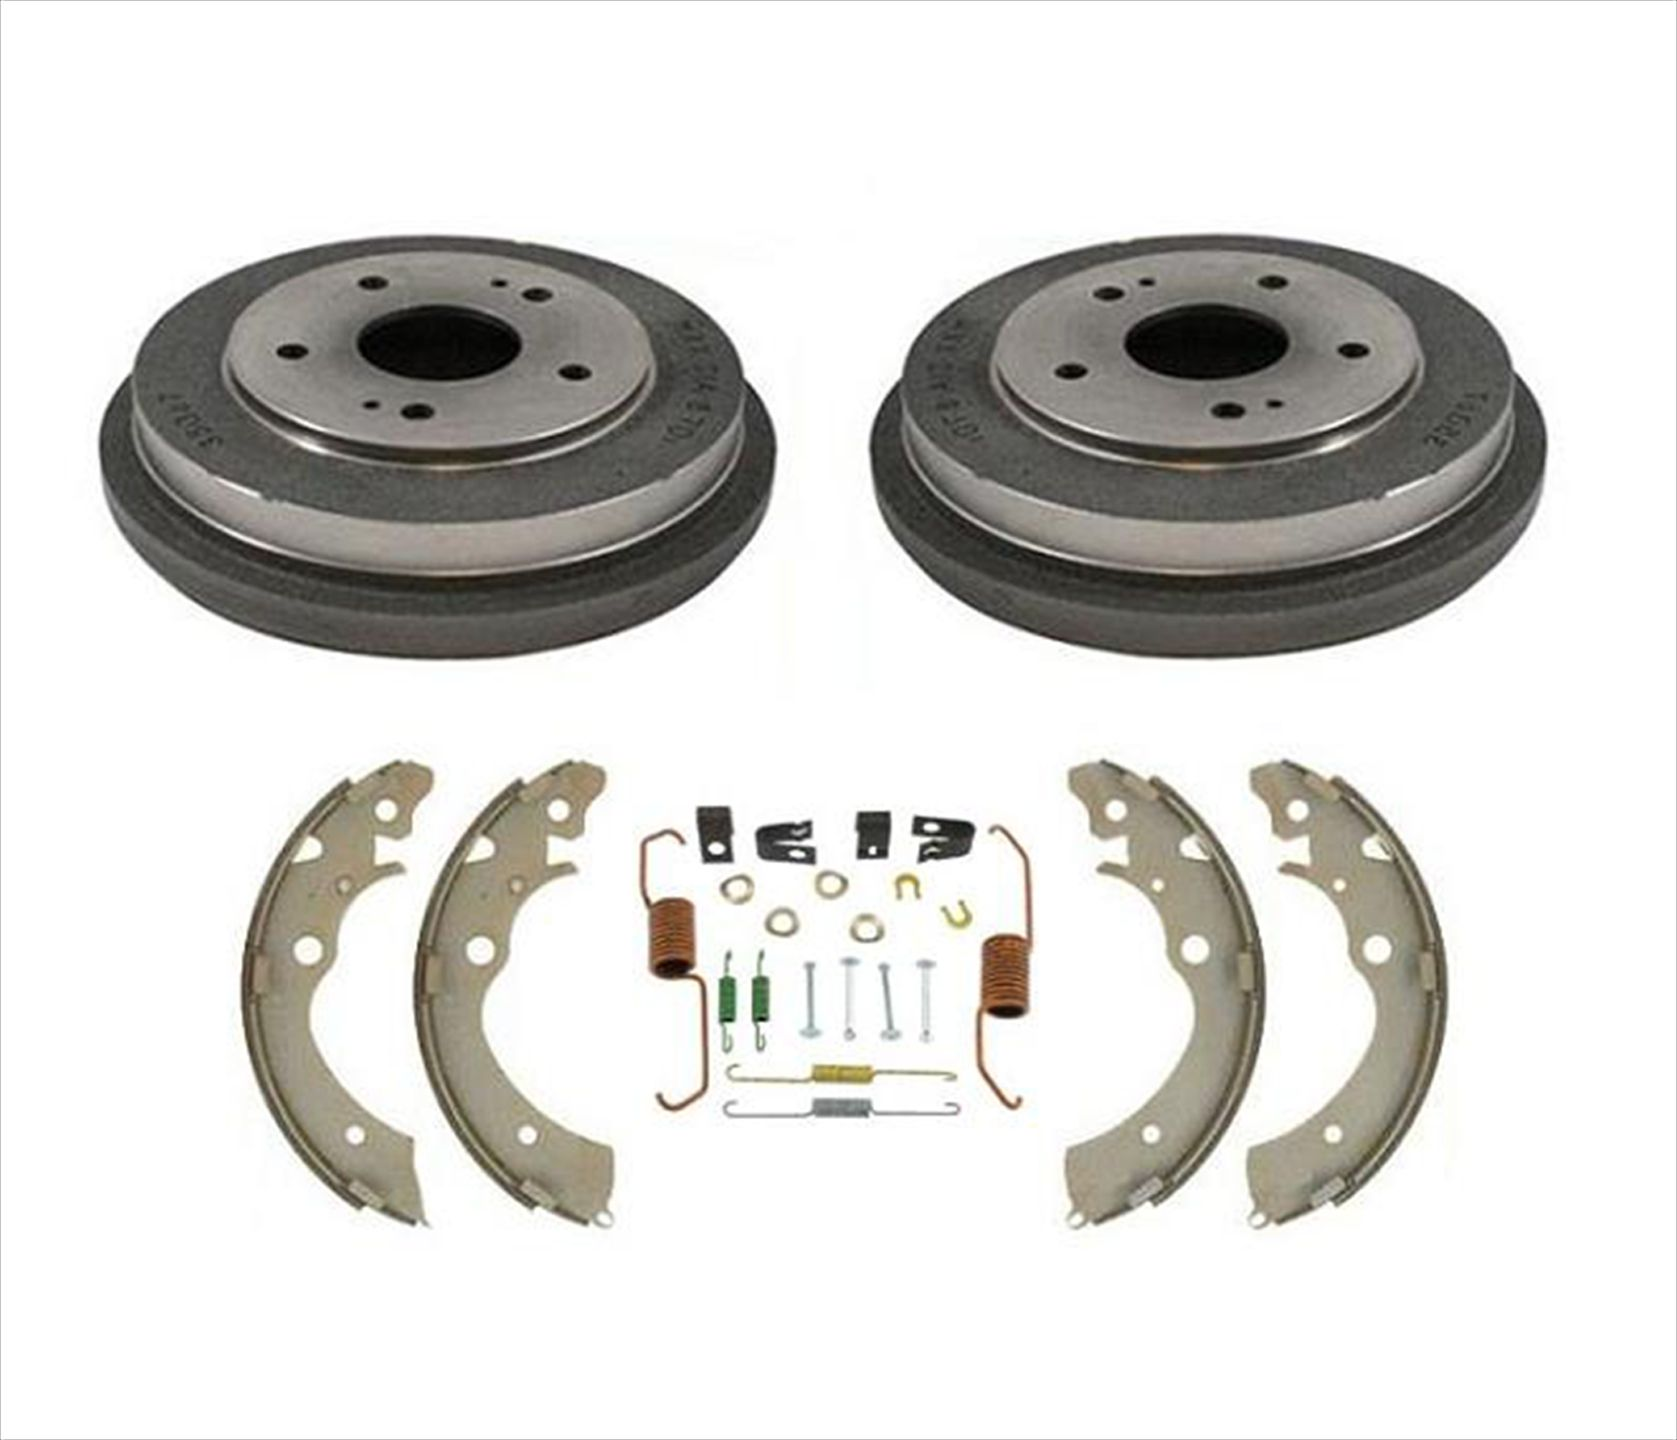 2000 For Toyota Echo Rear Drum Brake Shoes Set with 2 Years Manufacturer Warranty Both Left and Right